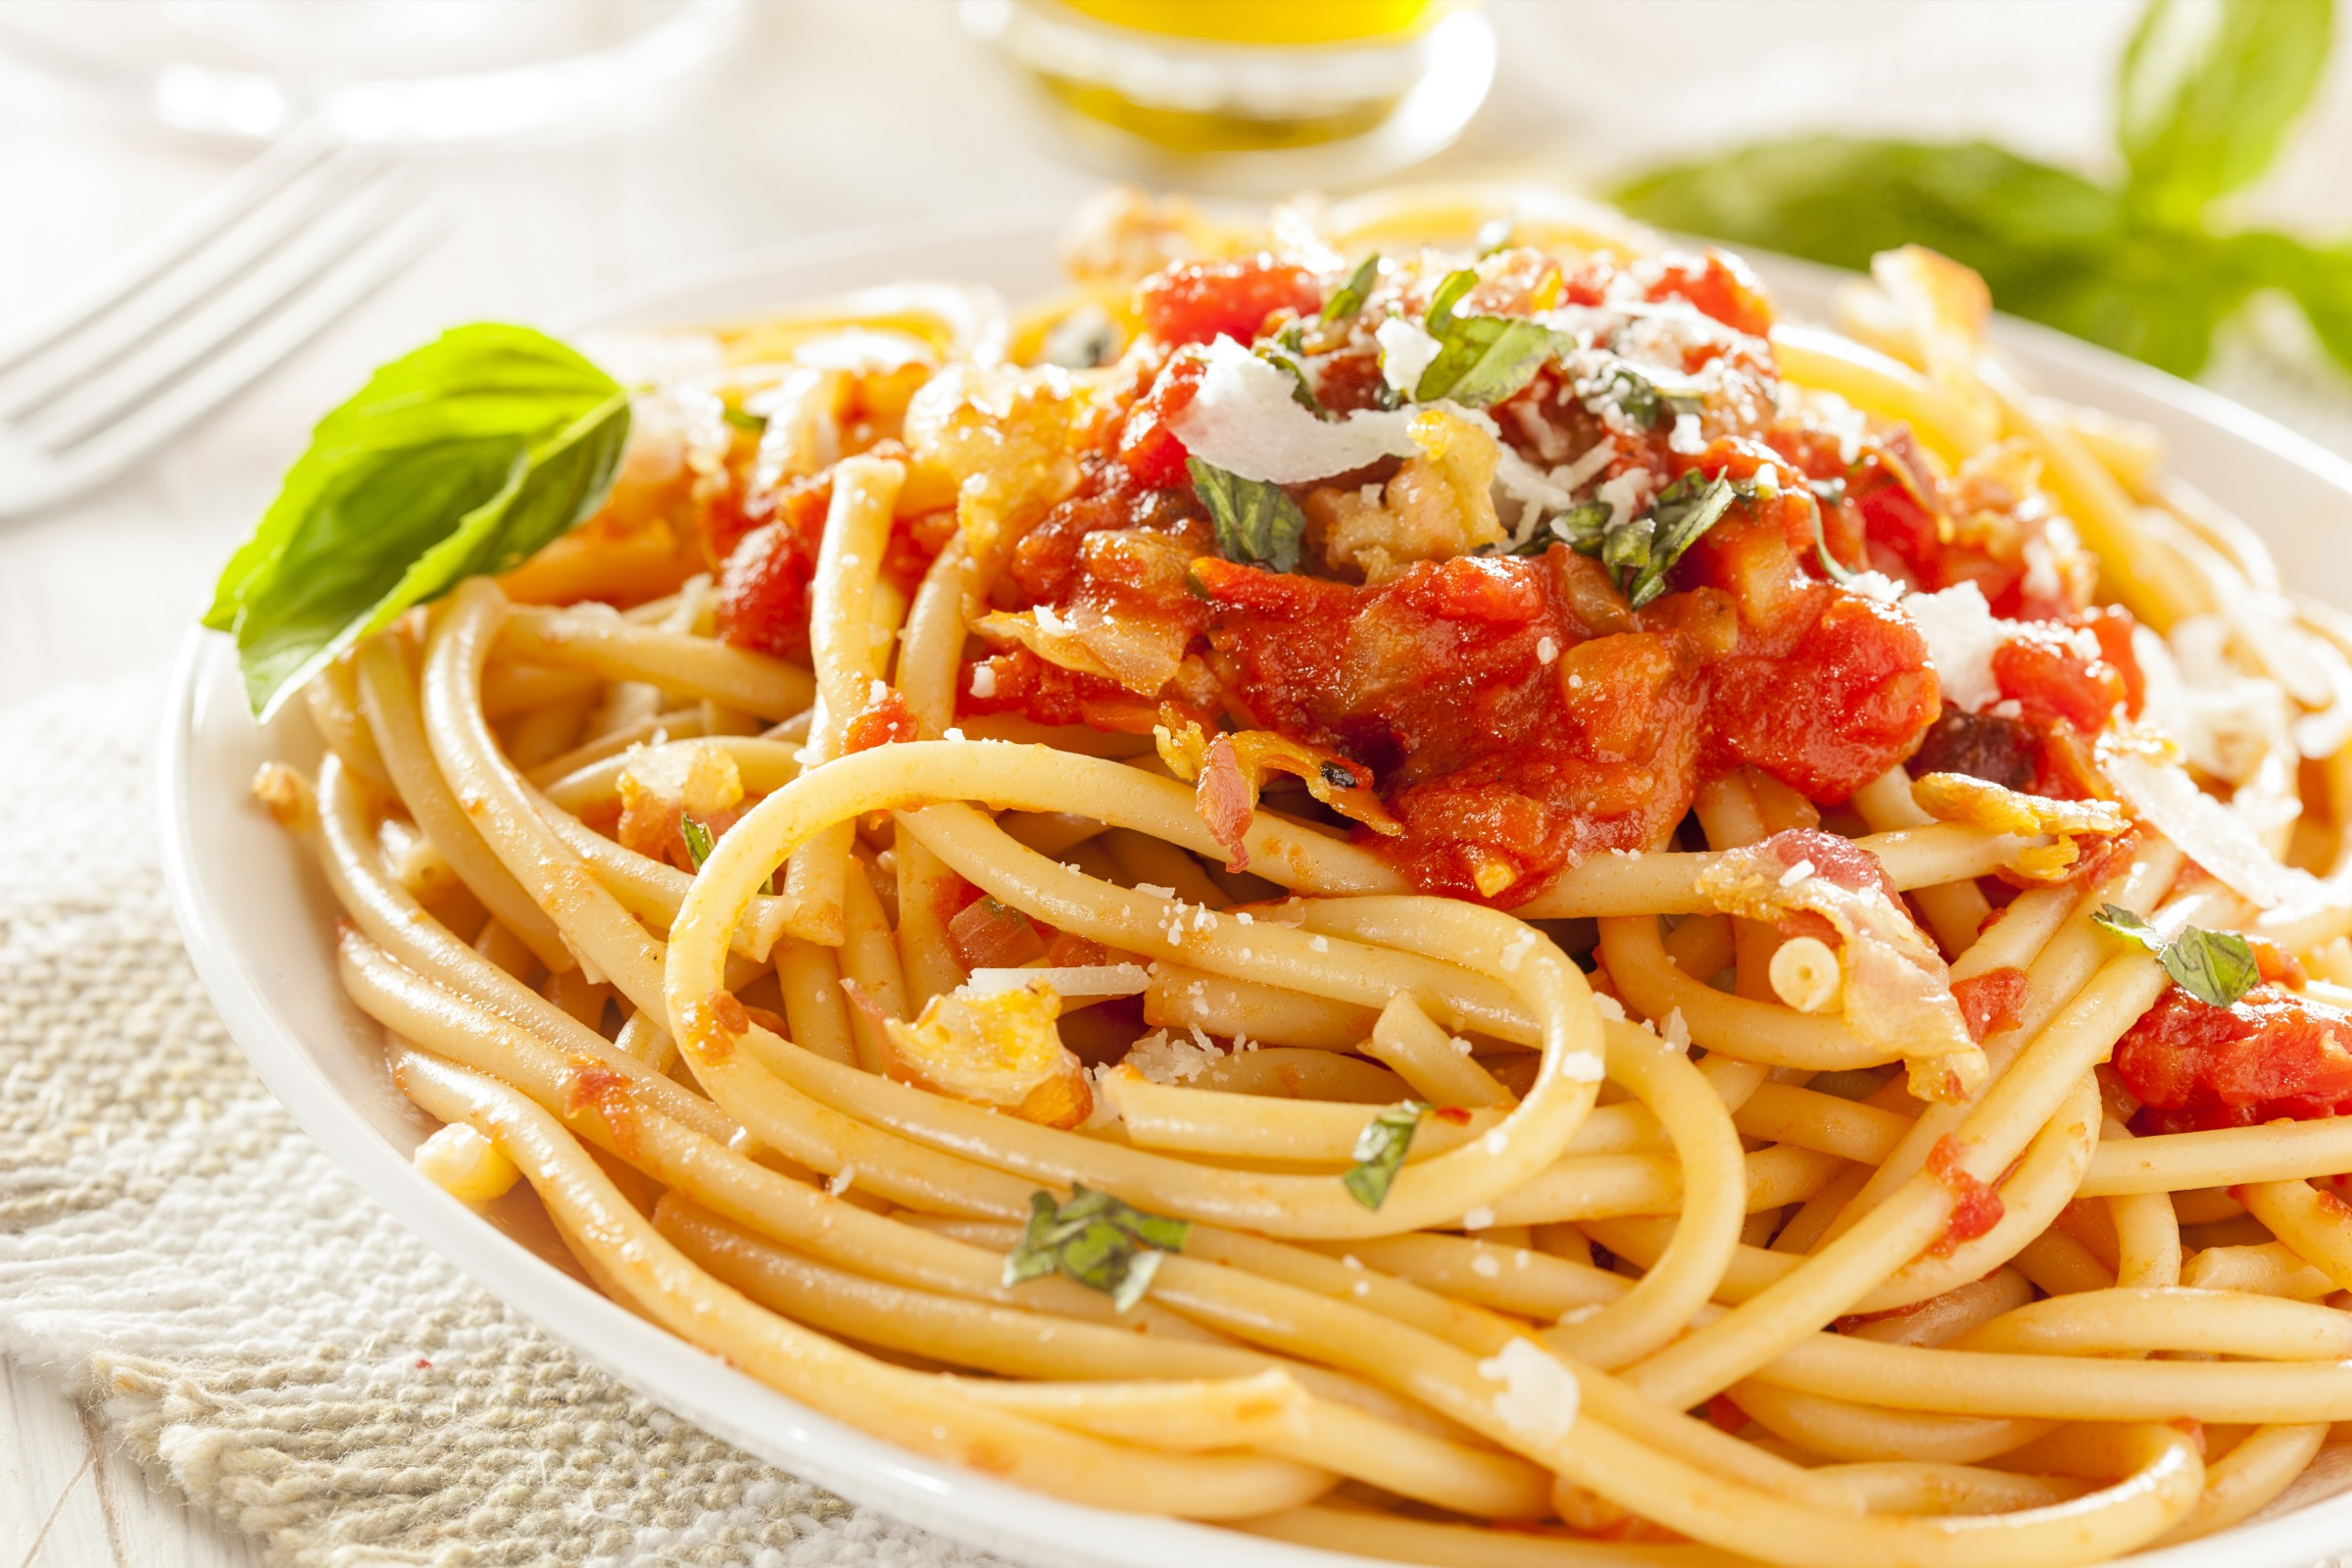 ... Calendar – FREE Calendars Pasta And Pizza With Ingredients in